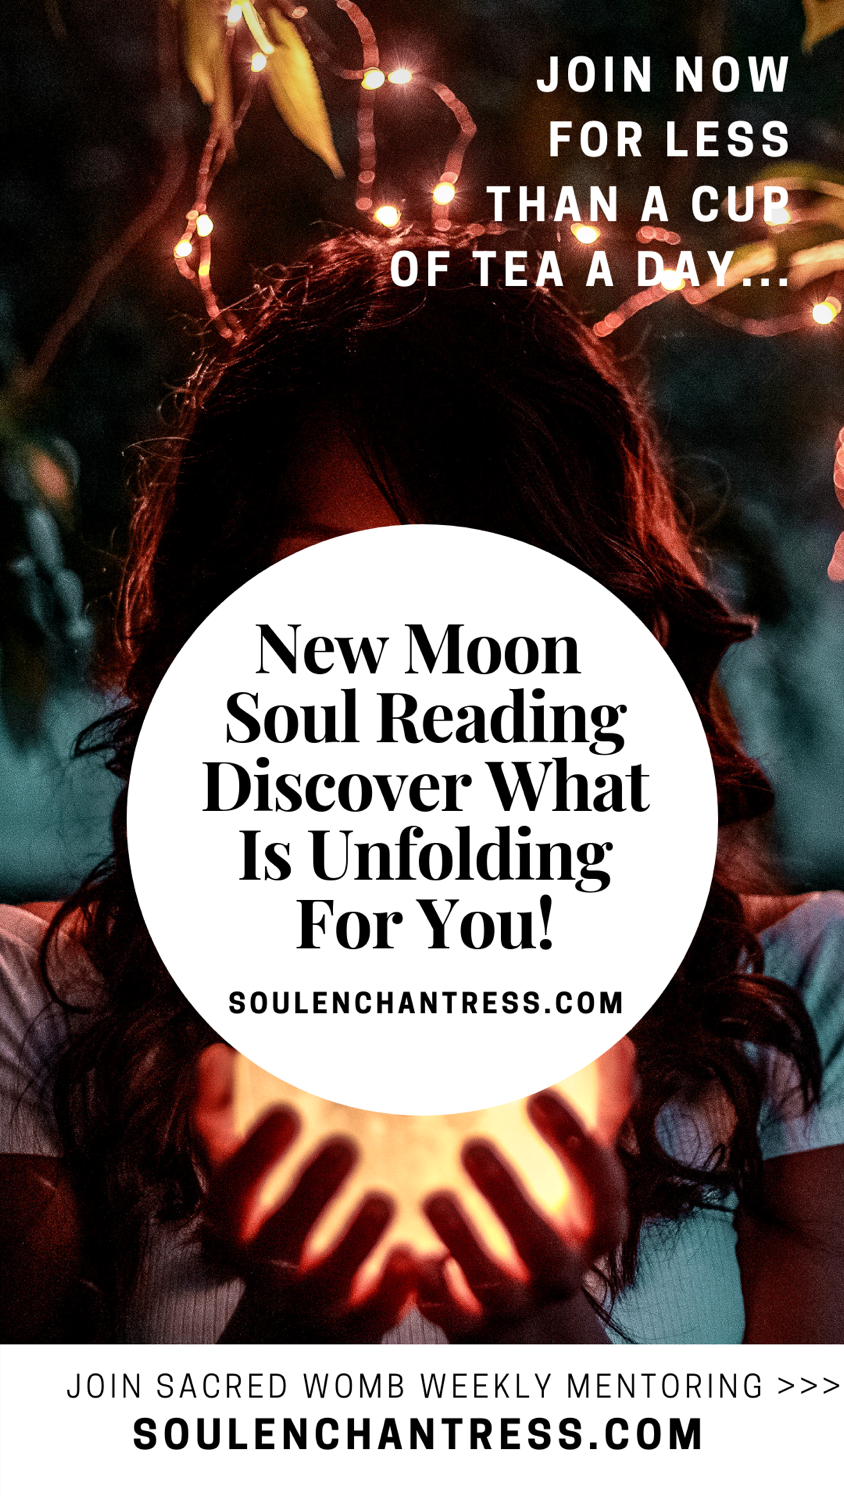 new moon soul reading, what does my future hold, soul enchantress, shaman, seer